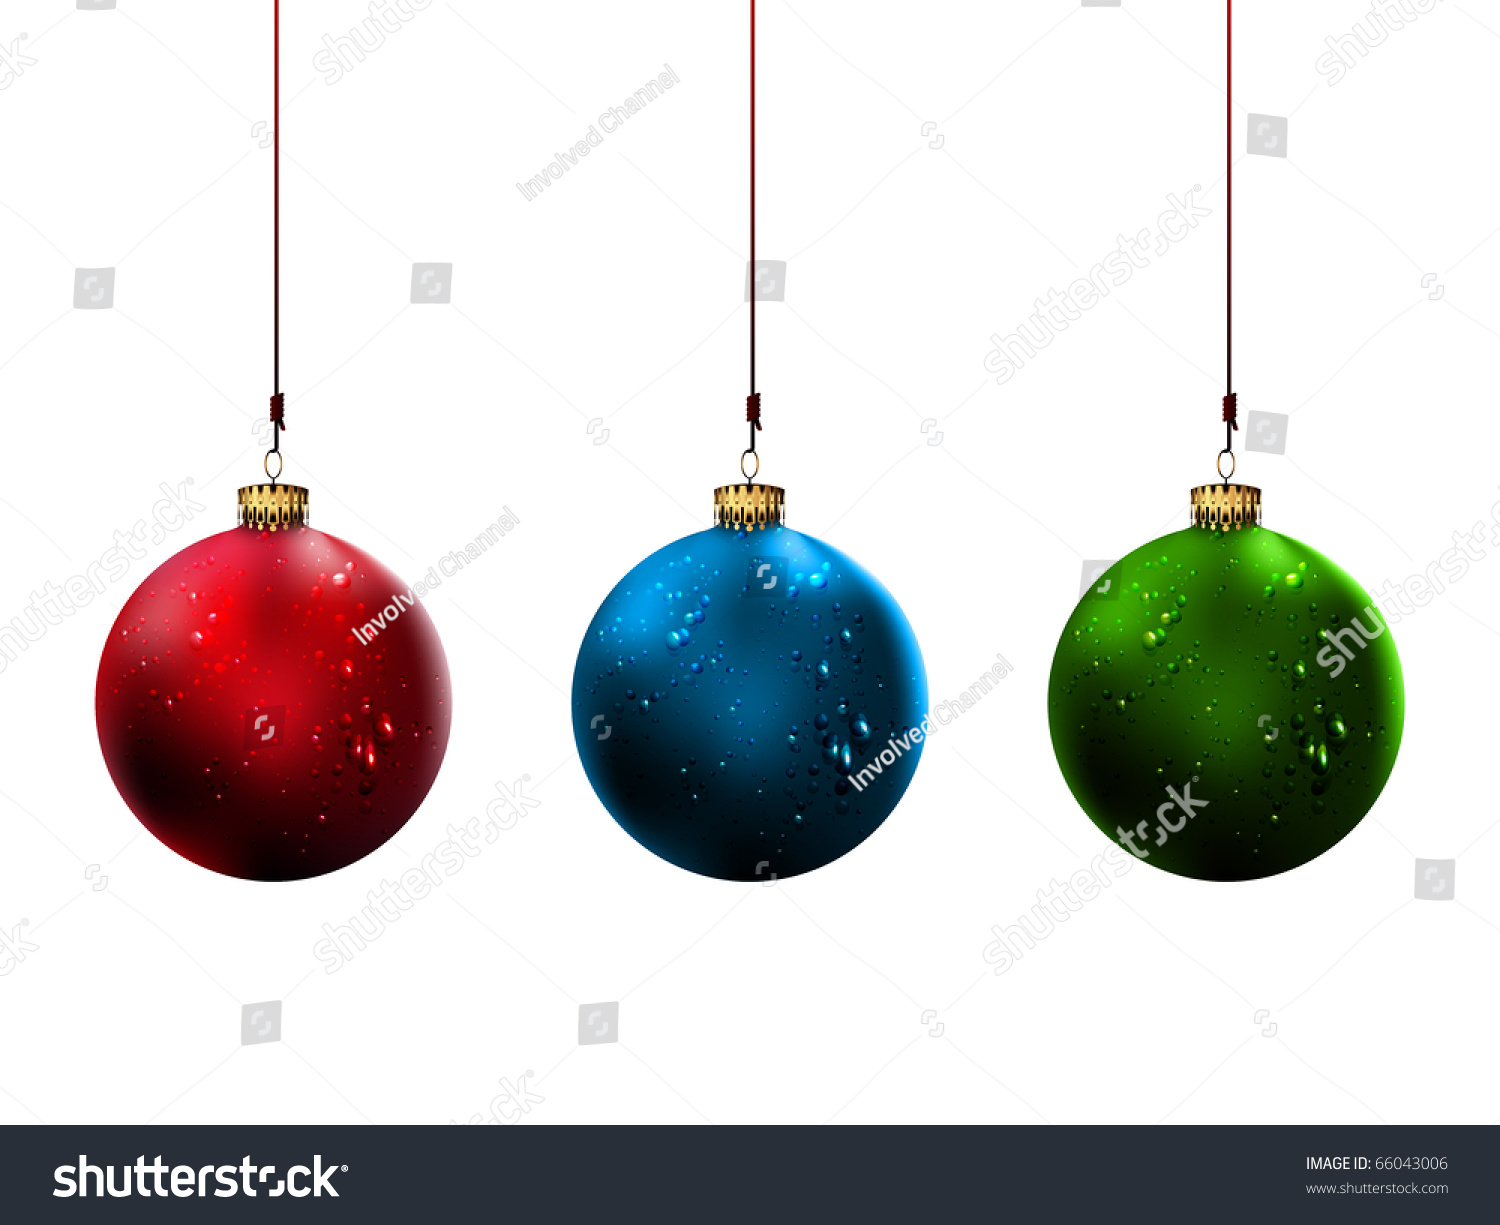 Christmas balls with shiny water drops isolated on white